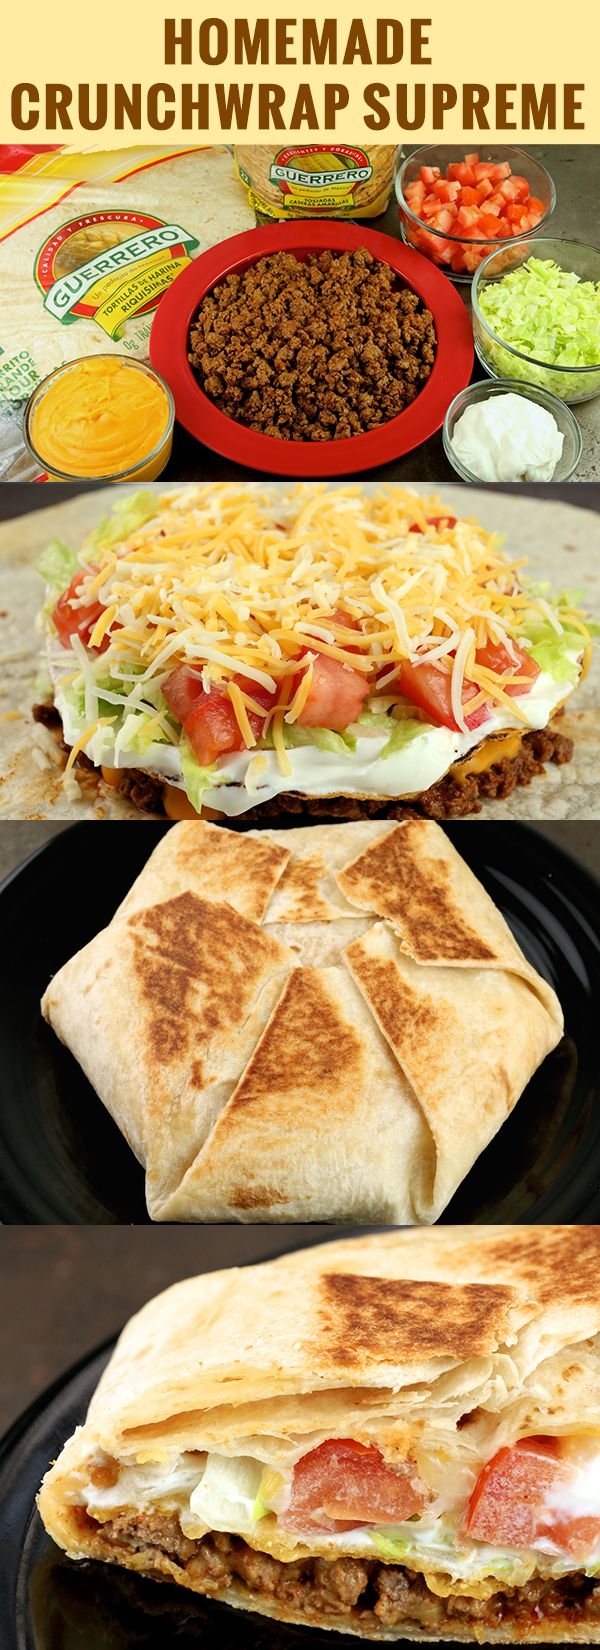 easy home cooked dinner ideas. homemade crunchwrap supreme. taco bell recipeseasy mexican food easy home cooked dinner ideas s